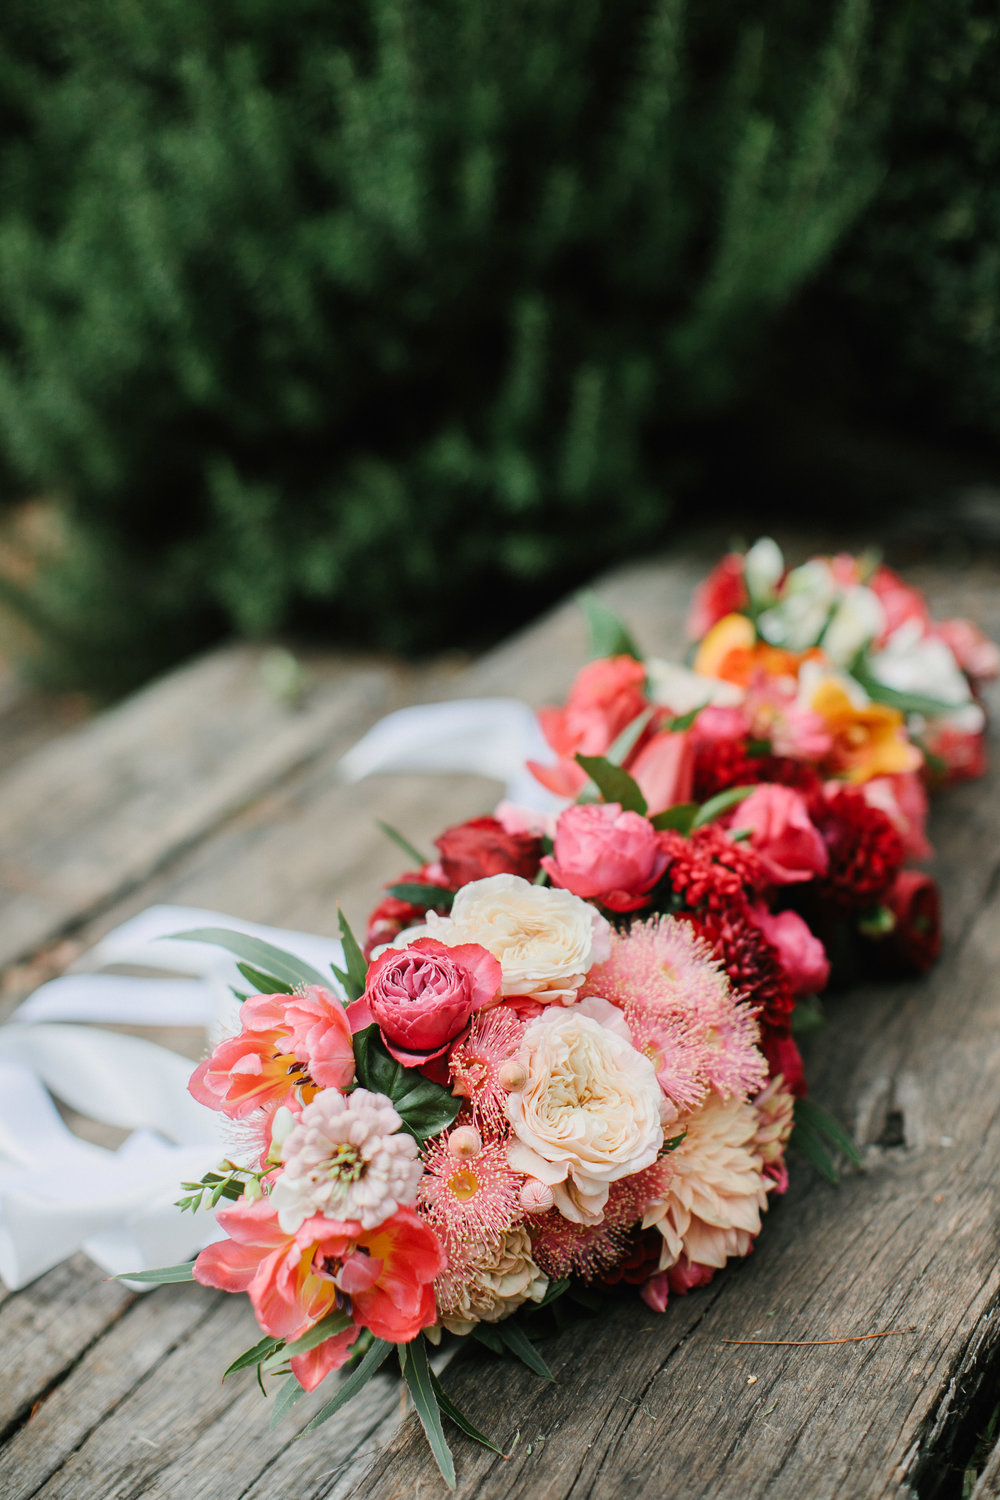 Zinnias, roses, flowering gum, tulips and dahlias - a candy inspired early Autumn bouquet. Photography by Bear Deer Fox.